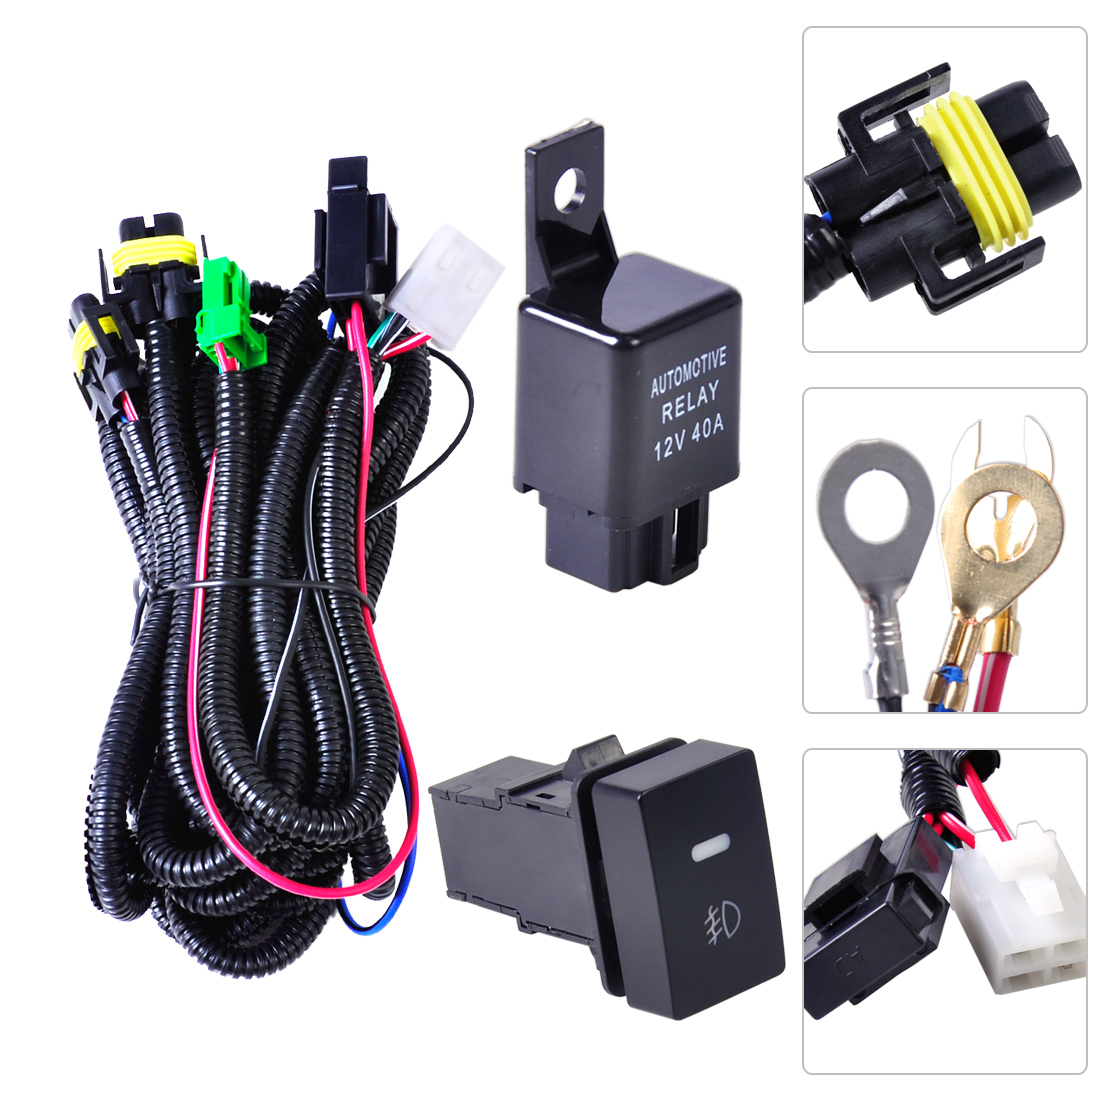 beler Wiring Harness Sockets Wire+Switch for H11 Fog Light Lamp for on amp bypass harness, oxygen sensor extension harness, battery harness, lighting remote controls, maxi-seal harness, obd0 to obd1 conversion harness, alpine stereo harness, pony harness, lighting and electrical horns, suspension harness, fall protection harness, radio harness, stoplight switches, safety harness, boat wiring, heating and lighting, pet harness, swing harness, dog harness, electrical harness, engine harness, nakamichi harness, lighting dimmer switches, cable harness,